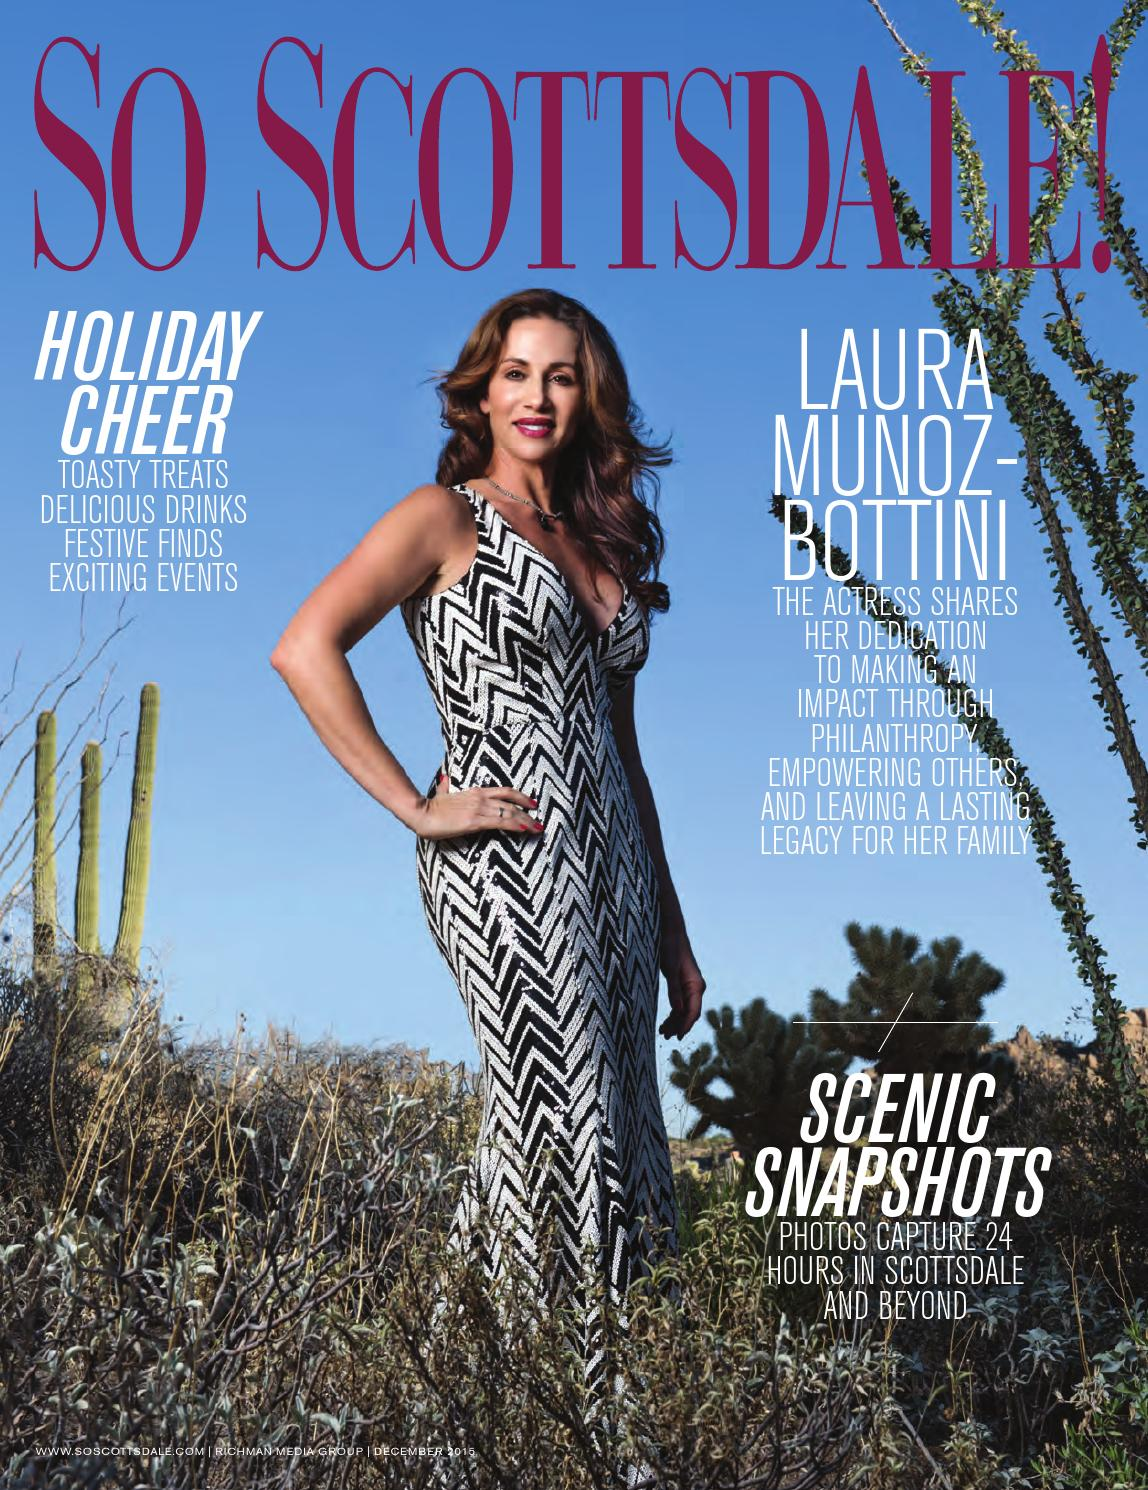 9d966492587e So Scottsdale December 2015 by Richman Media Group - issuu